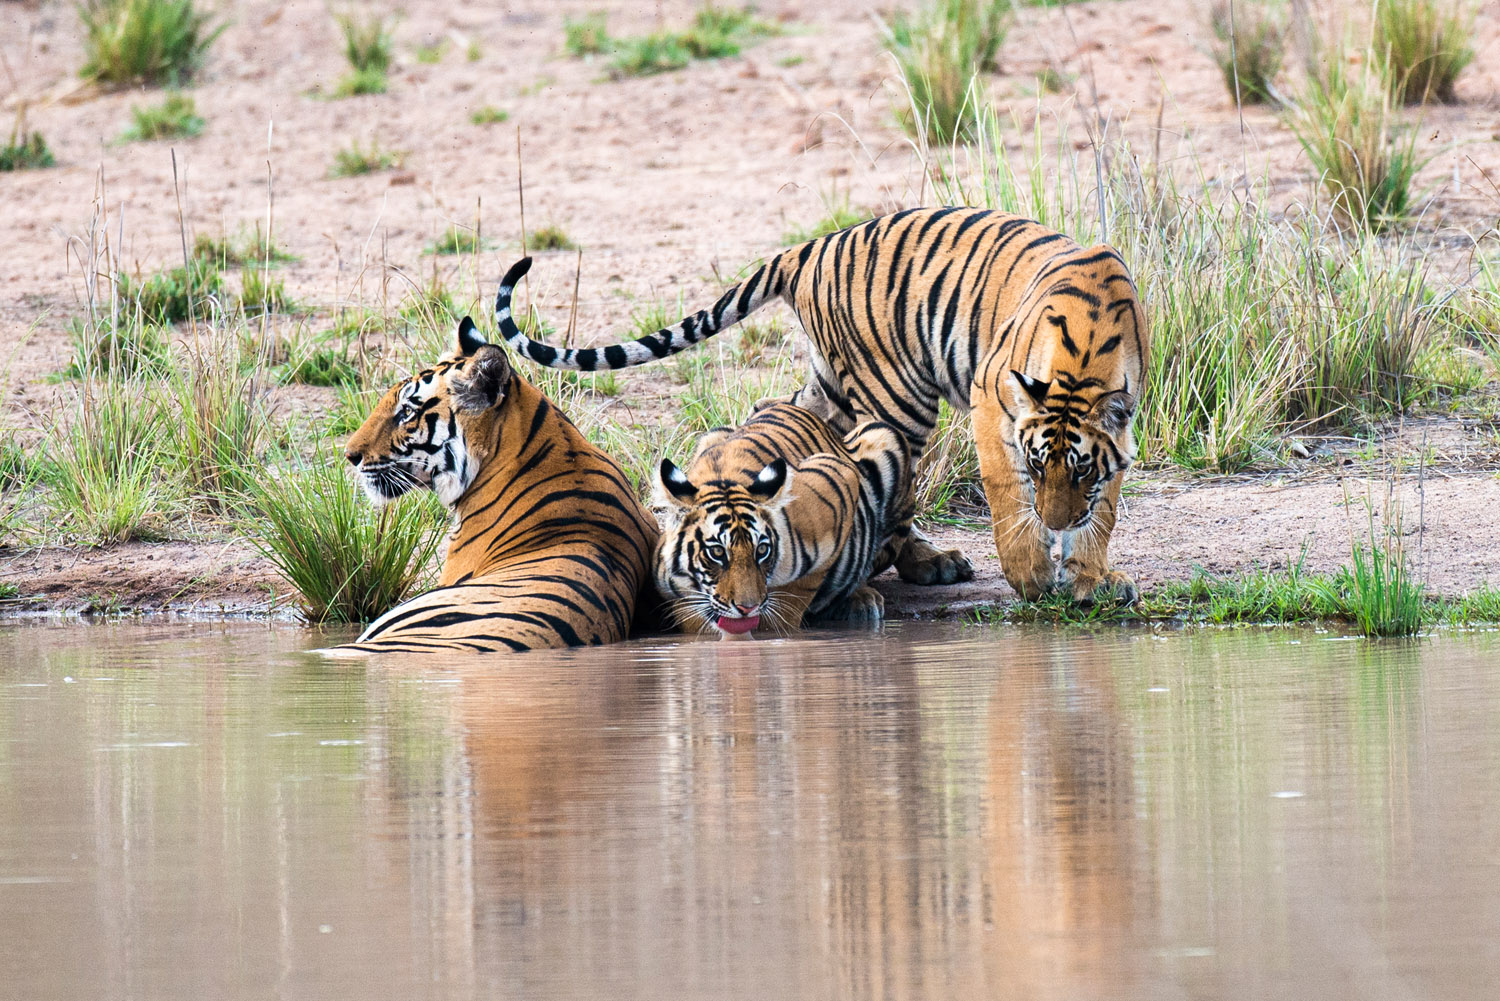 Bengal tiger mother with cubs at edge of pool, Bandhavgarh National Park, Madhya Pradesh, India